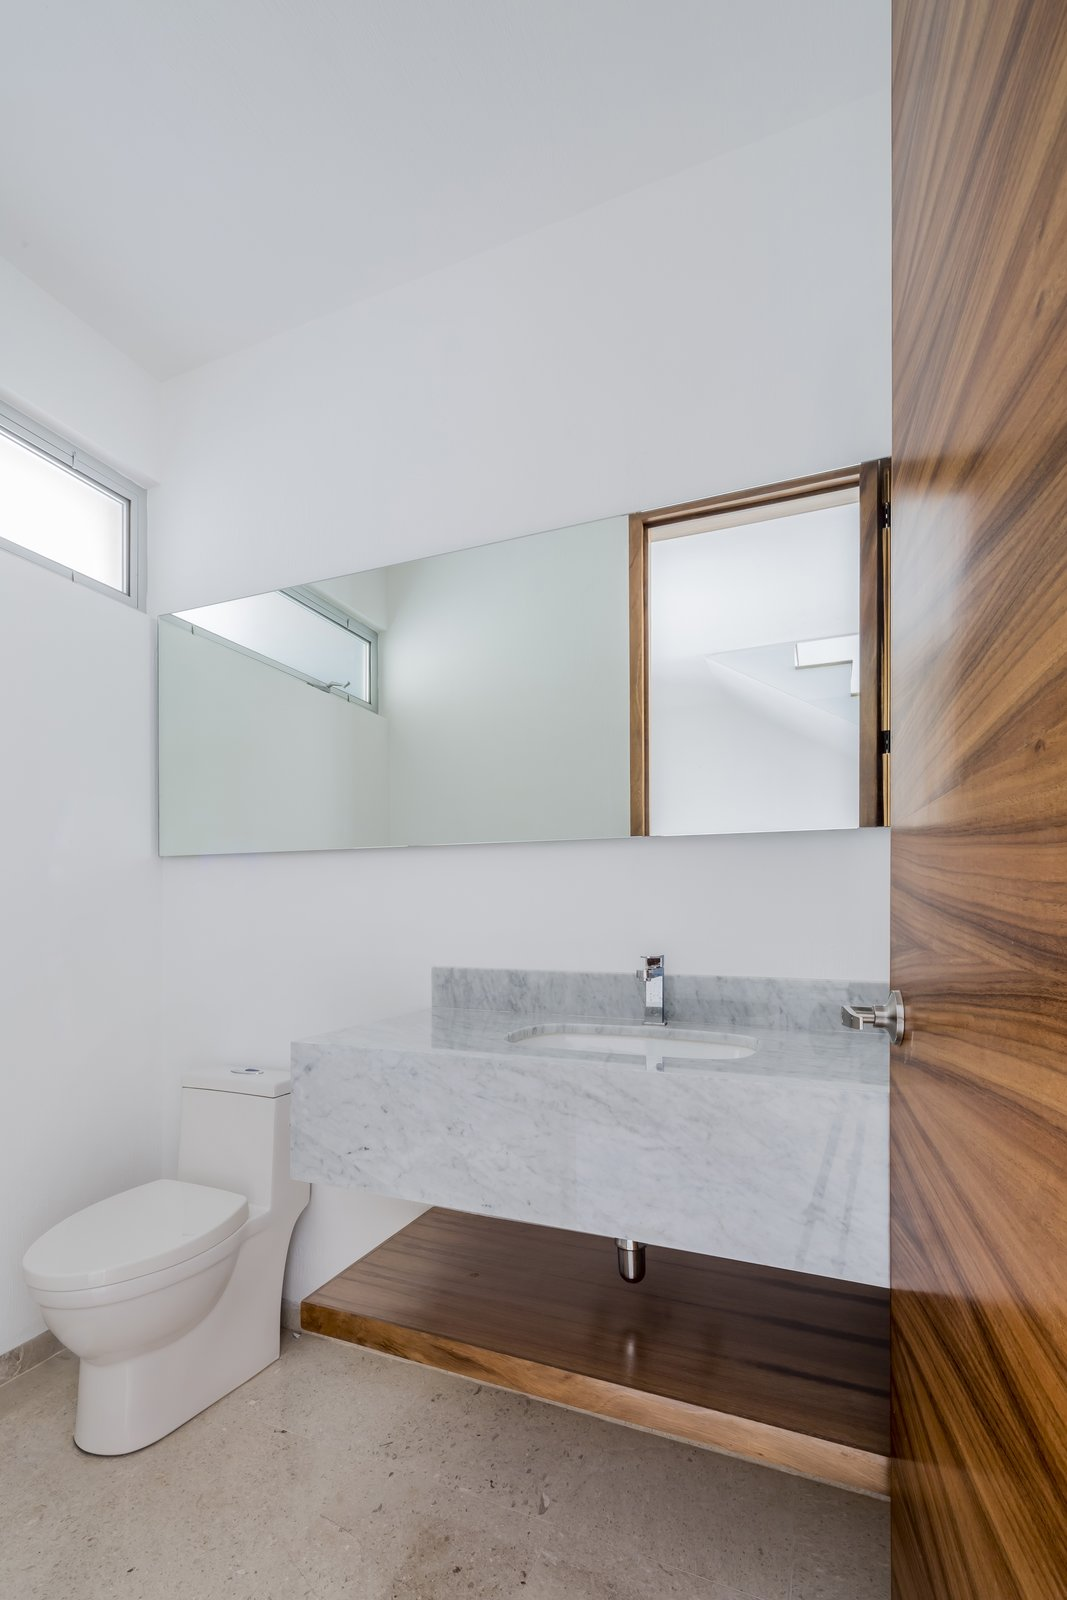 Tagged: Bath Room, Marble Counter, Marble Floor, Ceiling Lighting, and One Piece Toilet.  CASA VALLE by Sergio Villalobos